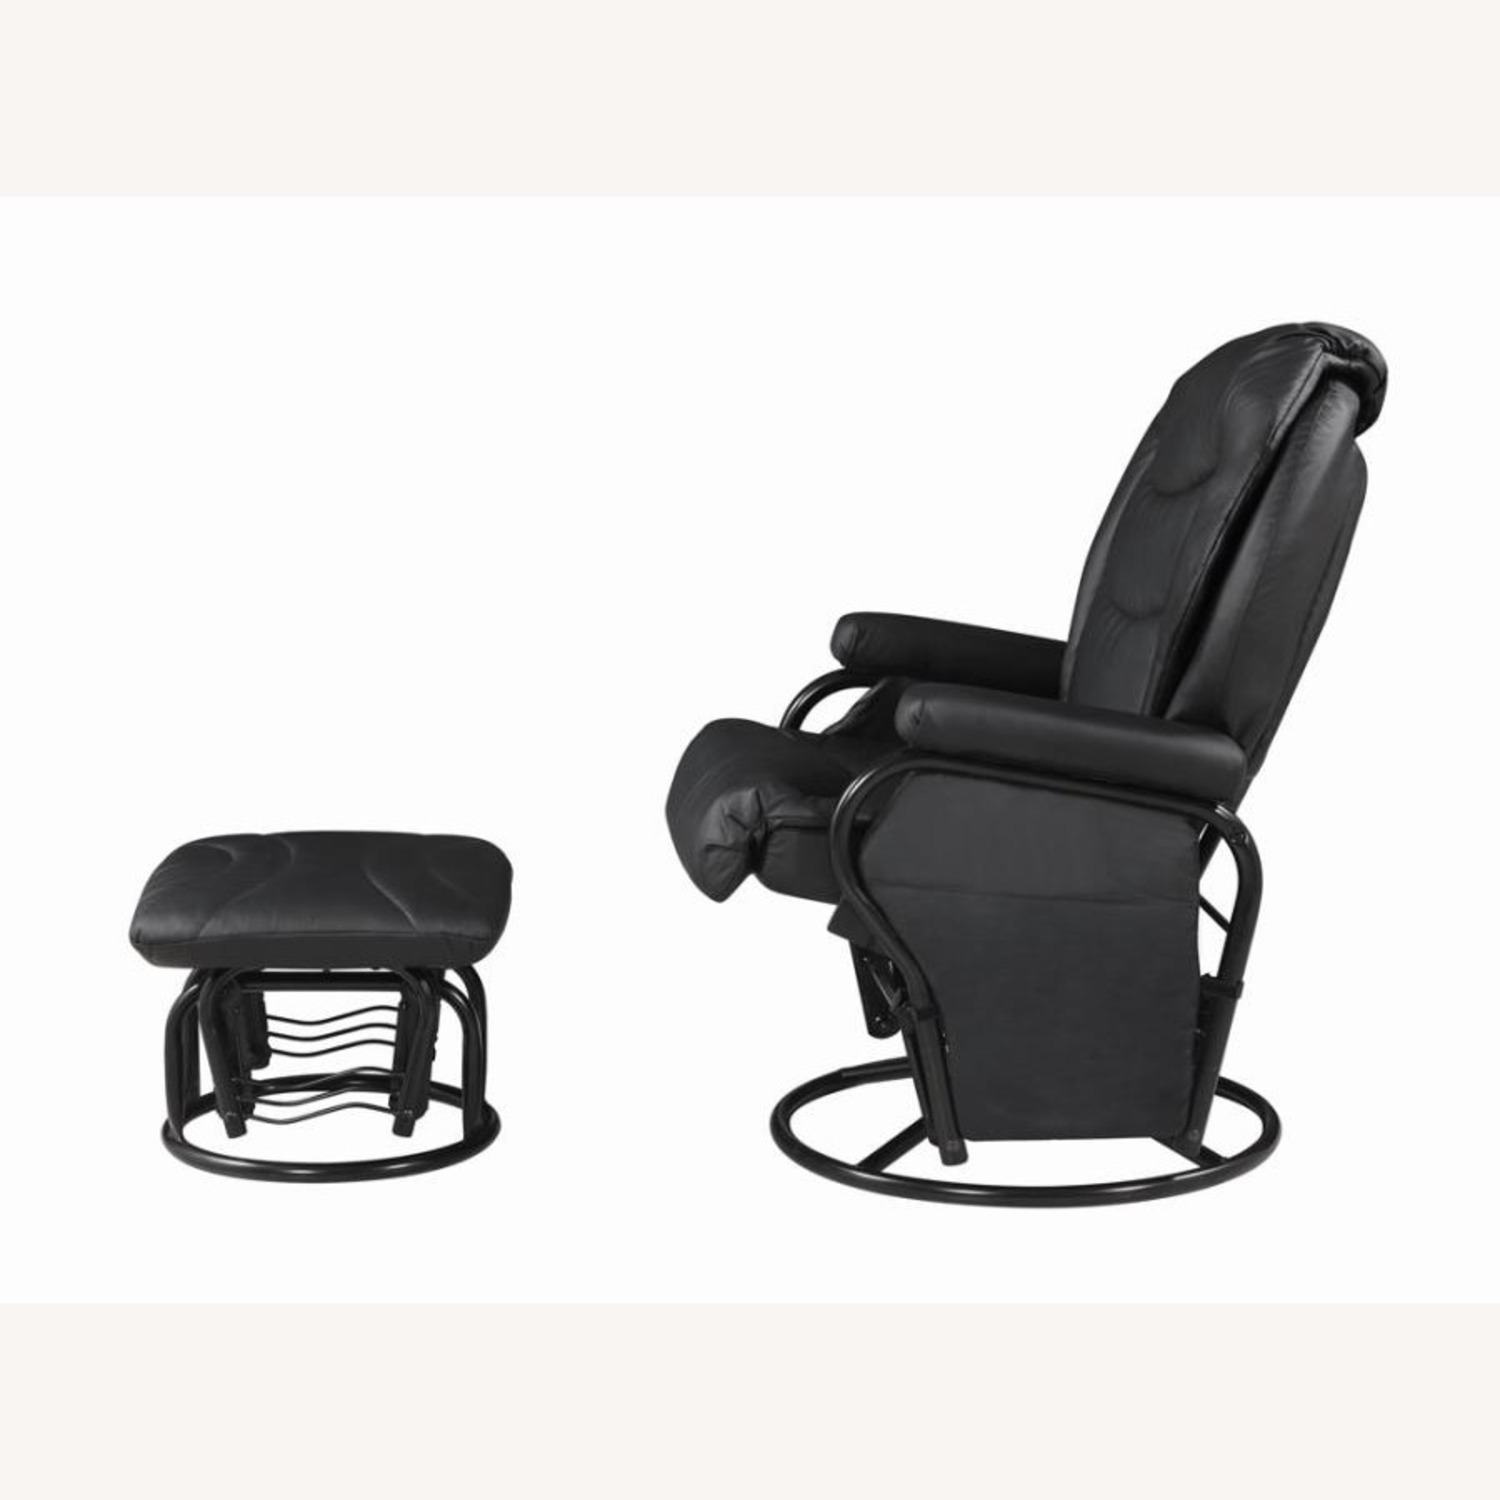 Glider W/ Ottoman In Black Leatherette Upholstery - image-2